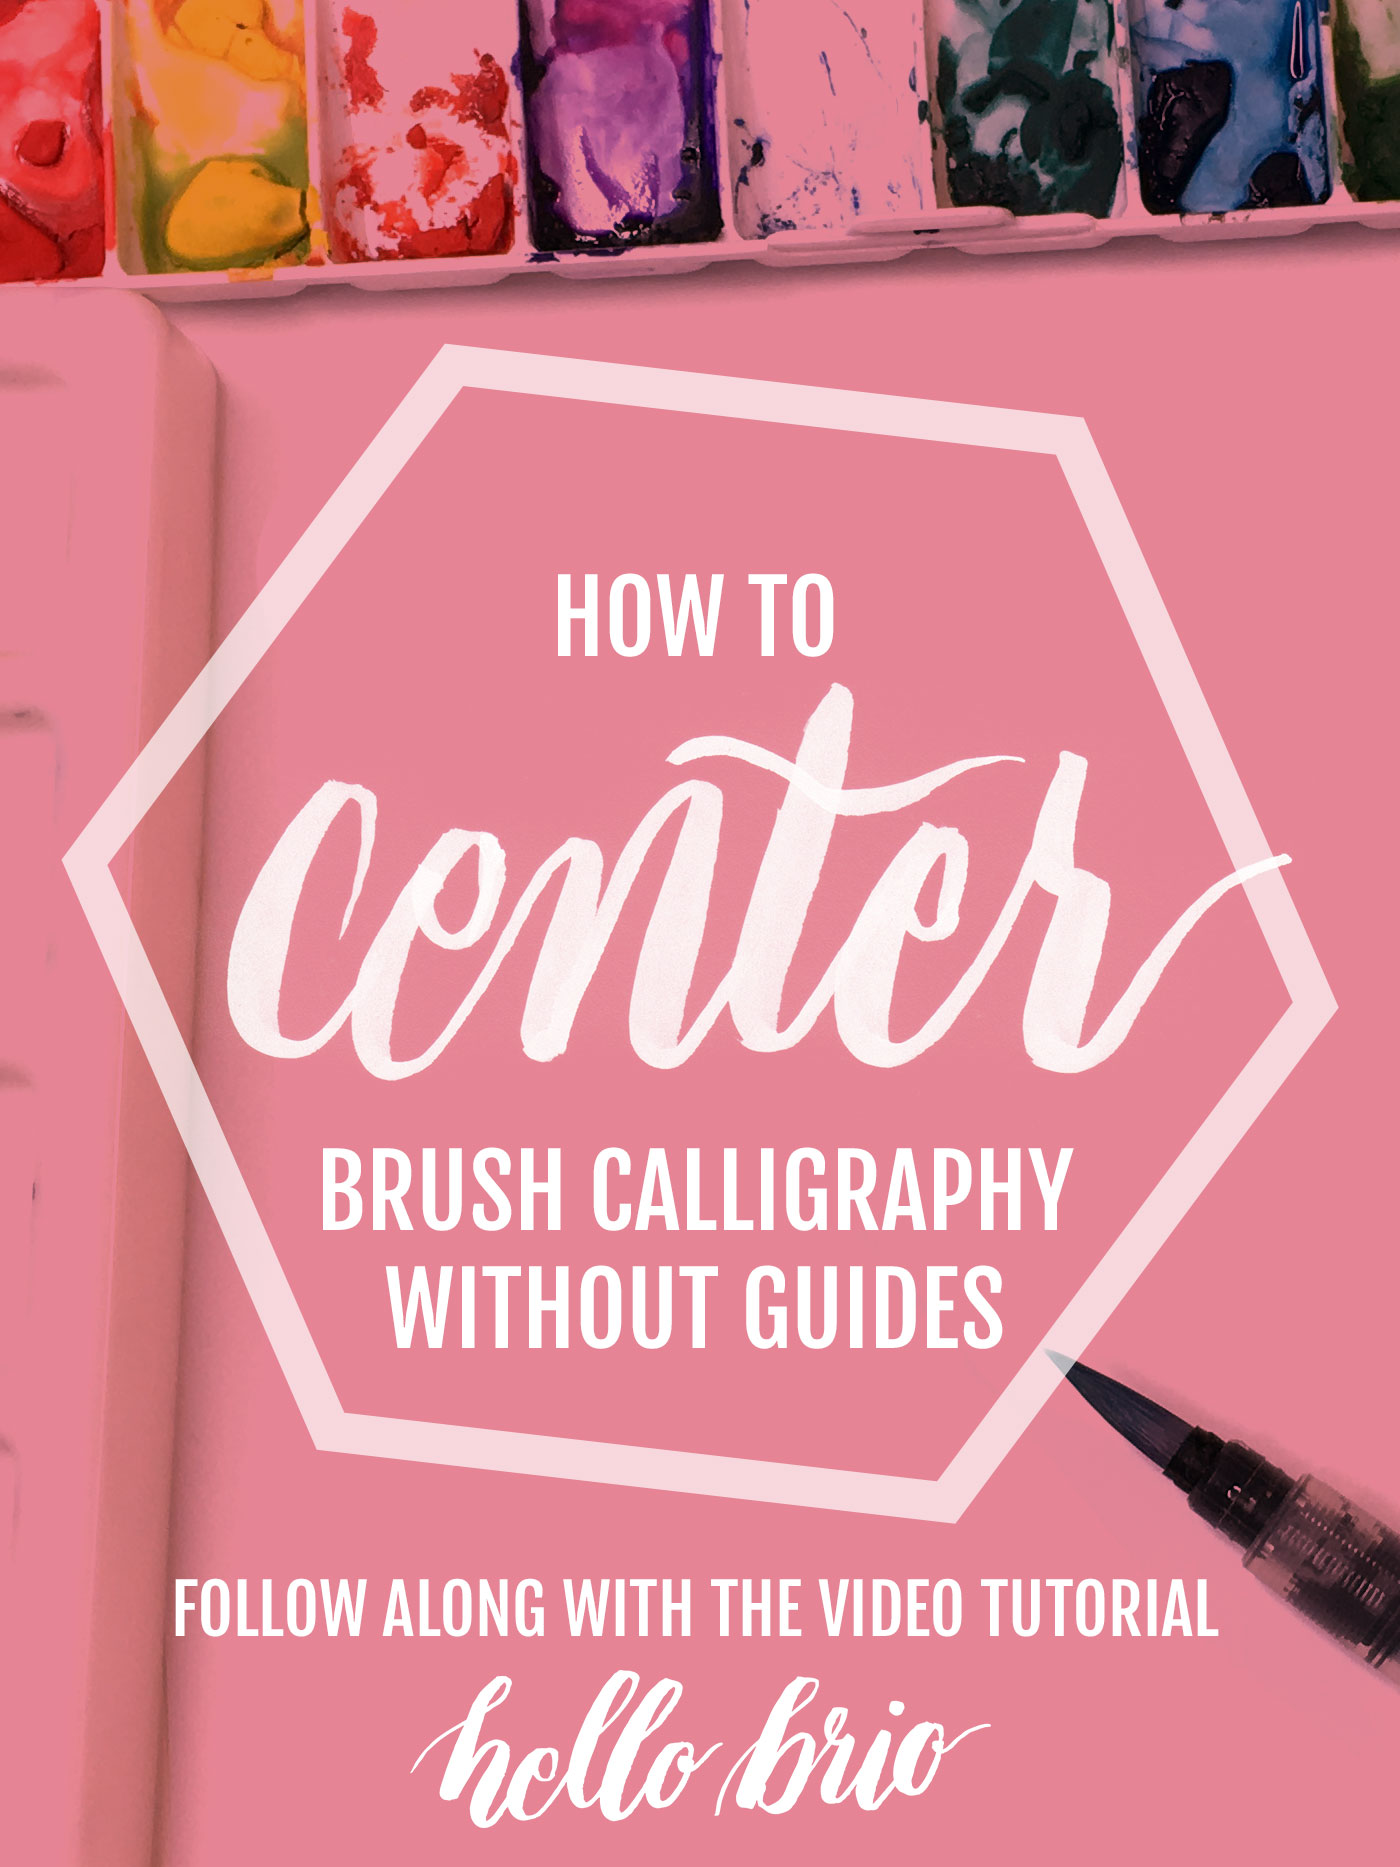 Learn how to center your brush lettering and calligraphy without using guides so you can save time and make less mistakes - quick video tutorial on hellobrio.com